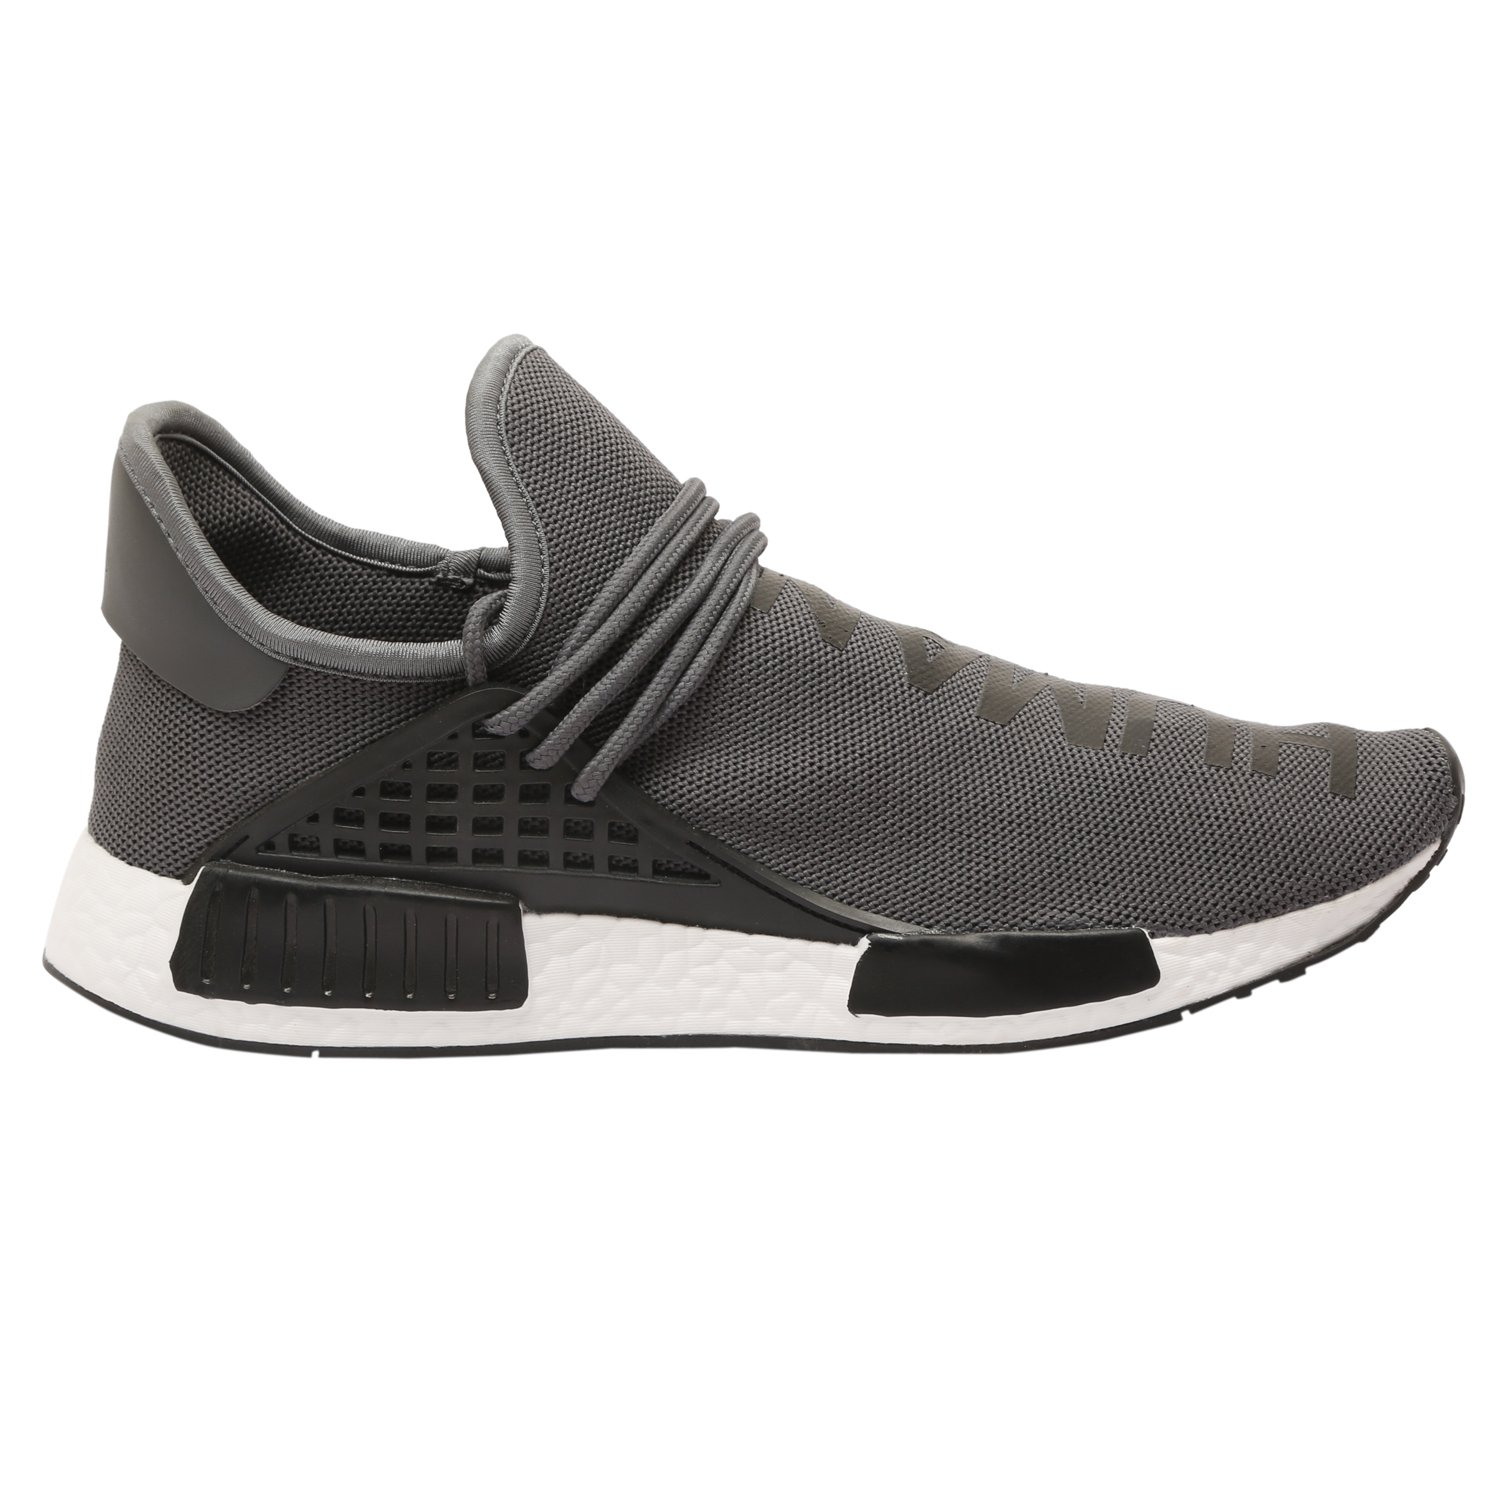 Vostro VSS1331-GILBERT Grey Sports Shoes For Men Size- 10 UK: Buy Online at  Low Prices in India - Amazon.in